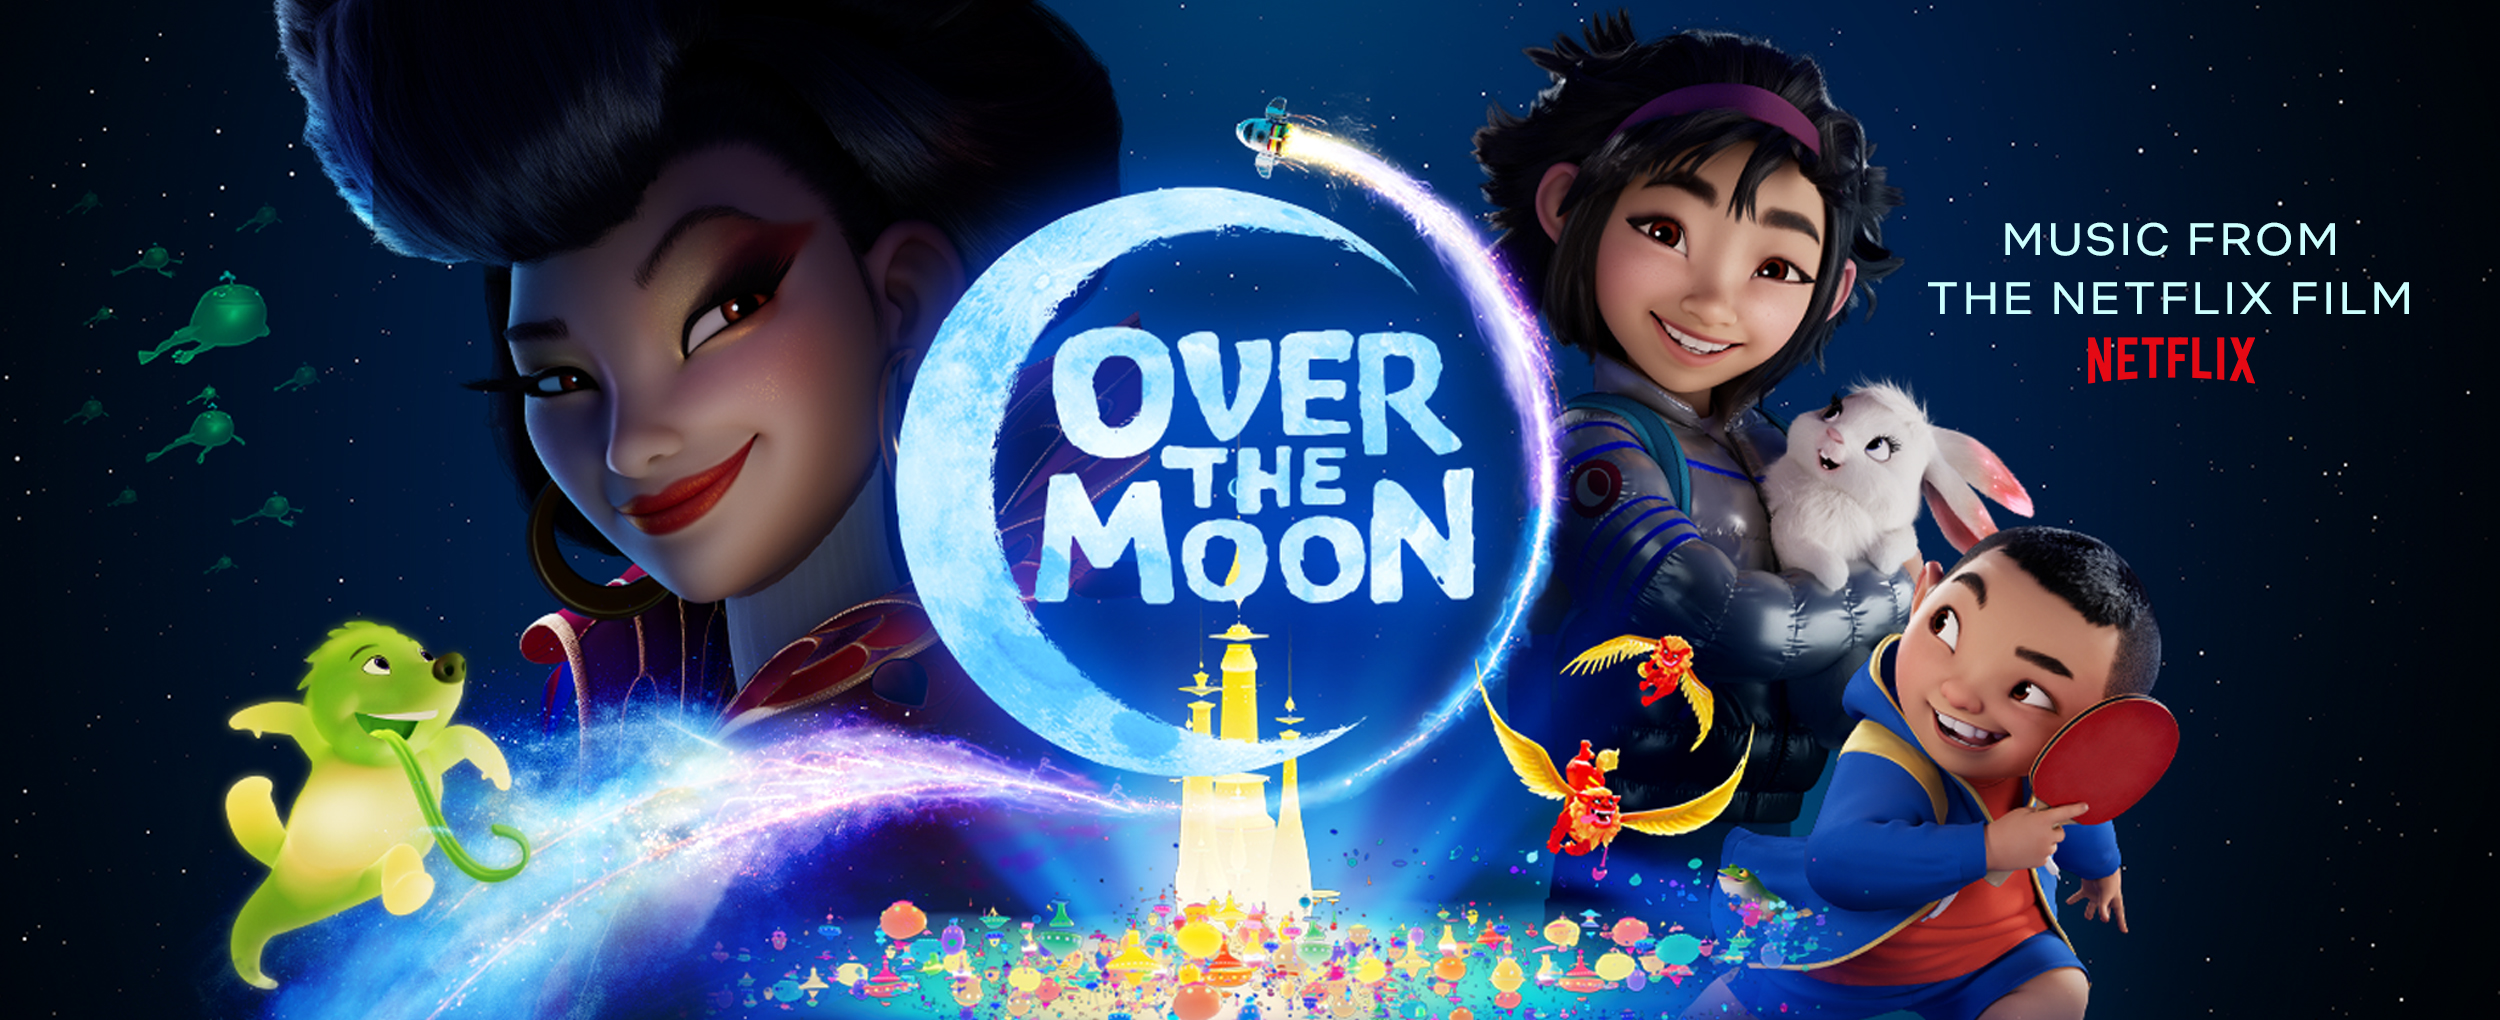 Over The Moon - slider banner